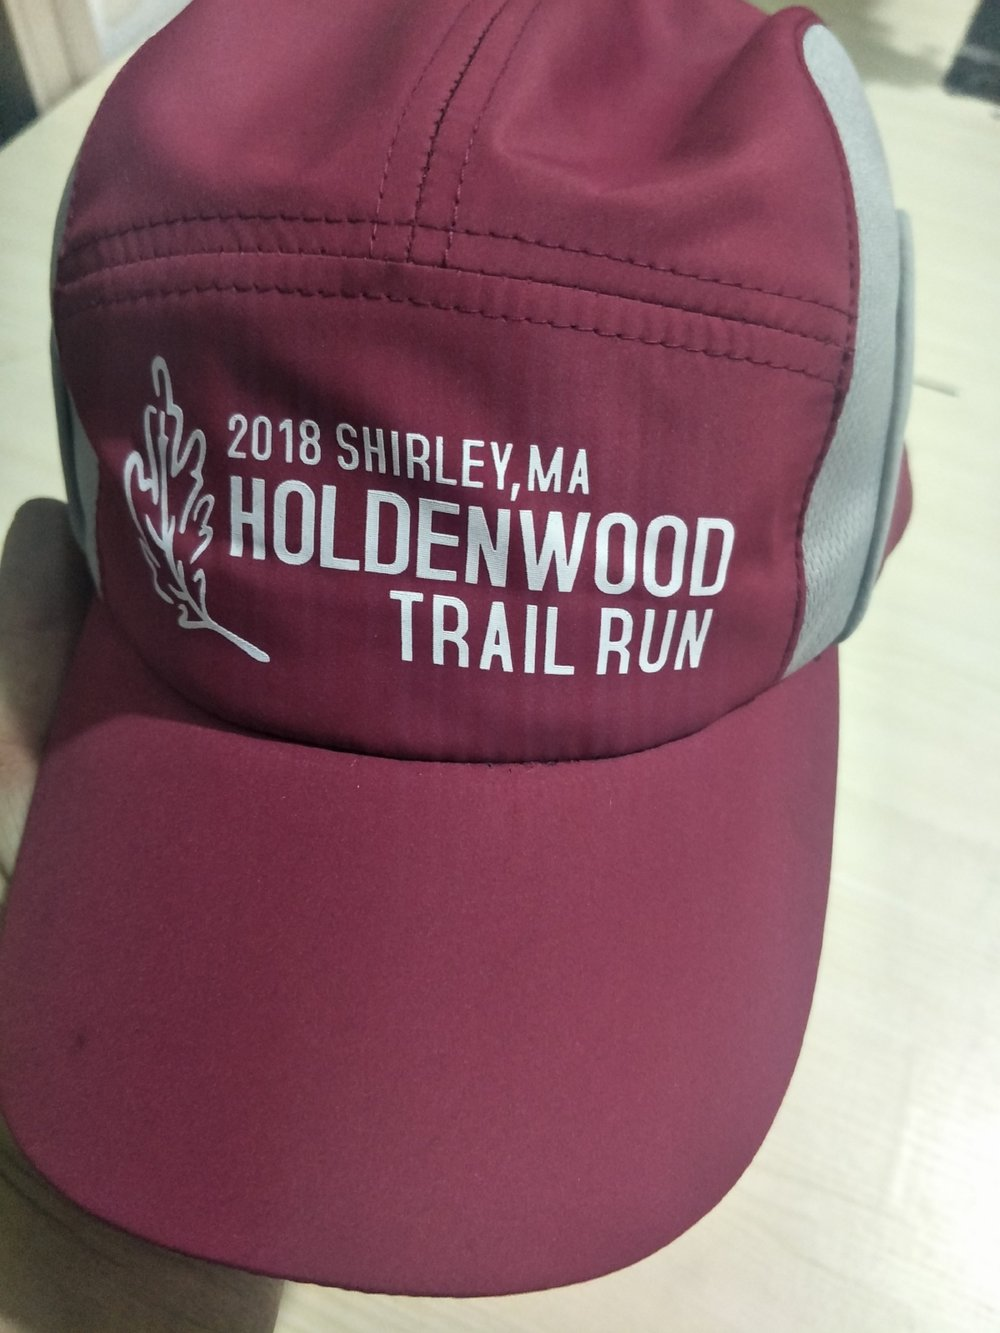 HTR Race Hat - The 2018 HTR race hat is available for free to the first 300 runners to sign up.  We currently have passed the 300 runner mark for this run but signup is still open!